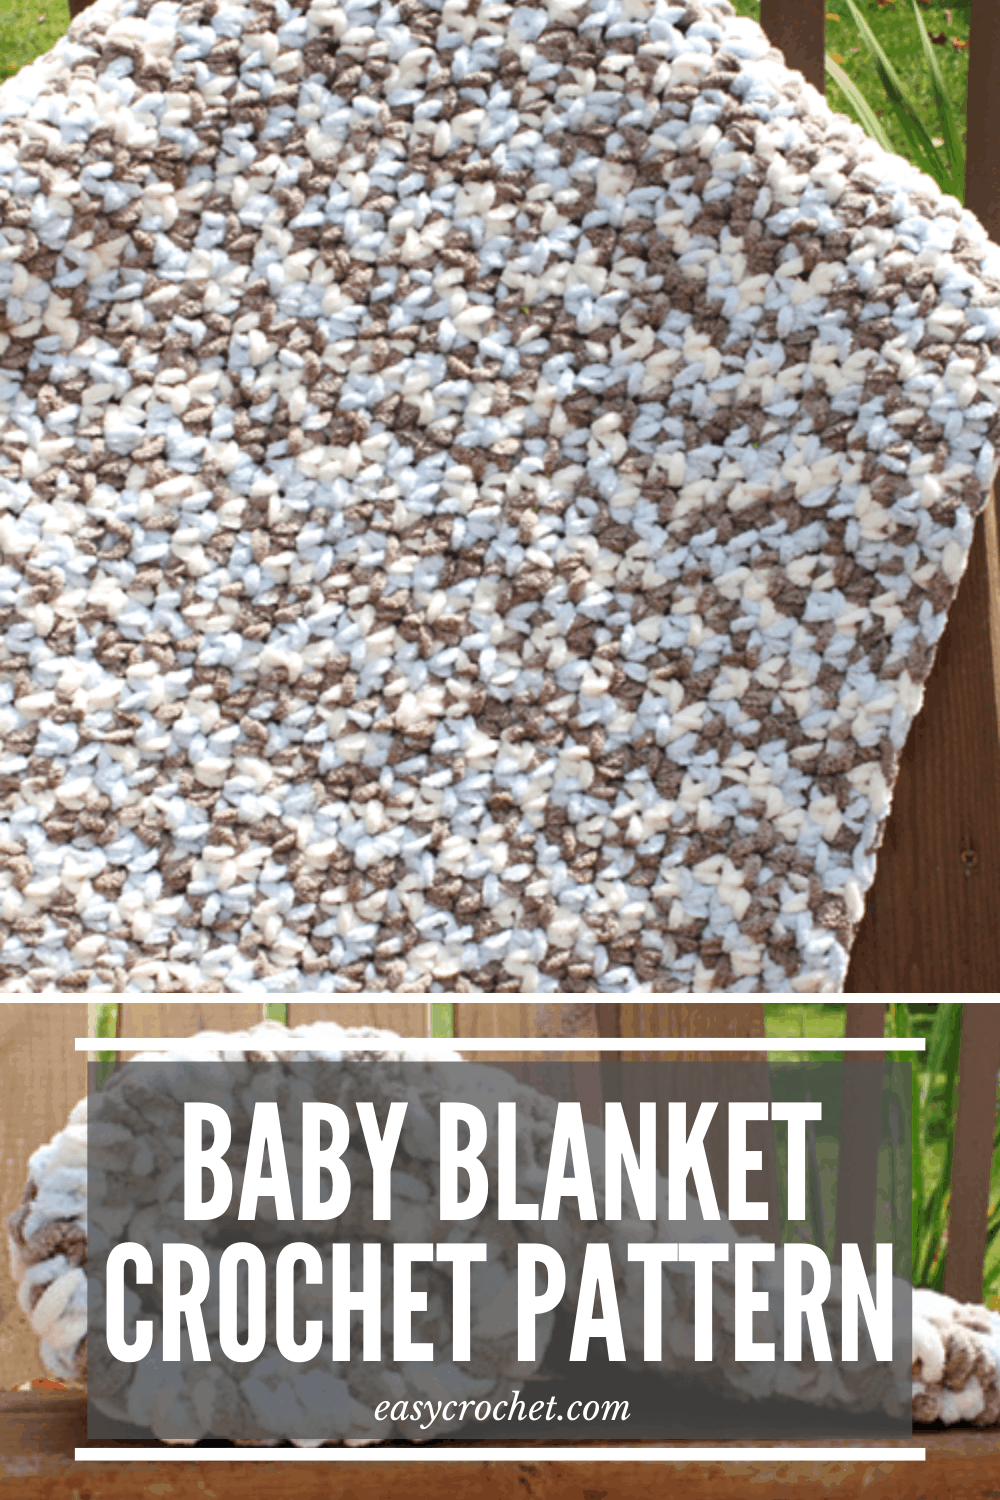 Make this easy to crochet baby blanket with this free crochet pattern from Easy Crochet. Great pattern for new crocheters or beginners. via @easycrochetcom